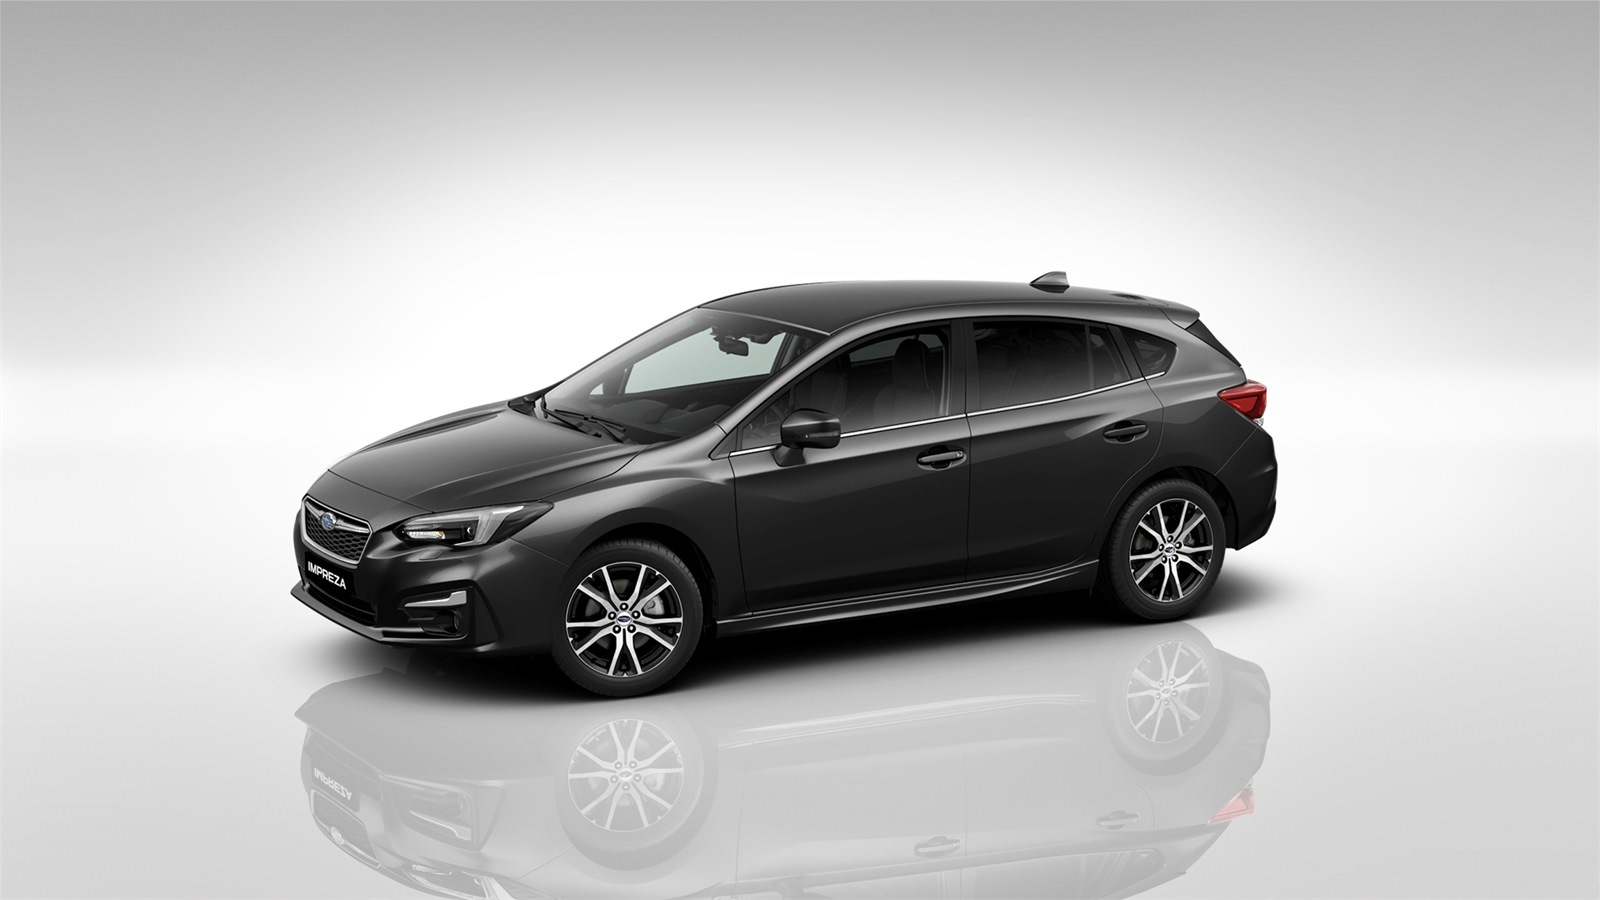 subaru impreza - Available in Dark Grey Metallic